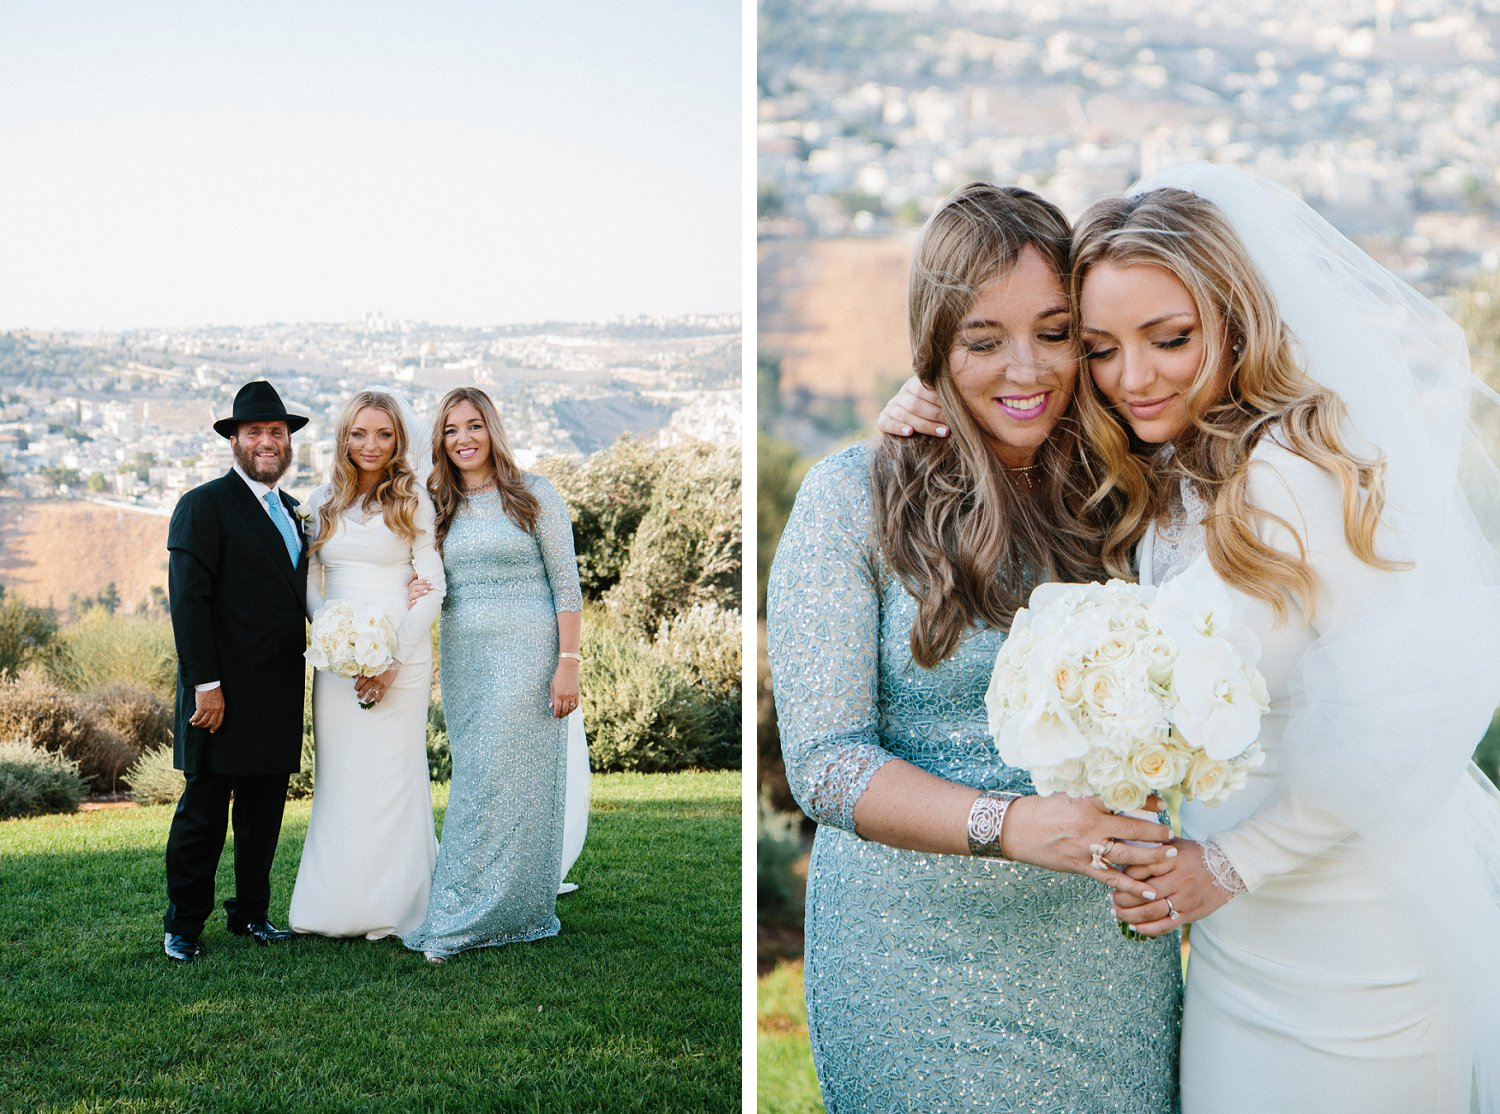 portrait of bride and her parents with Jerusalem in the background, and close up of bride with her mother